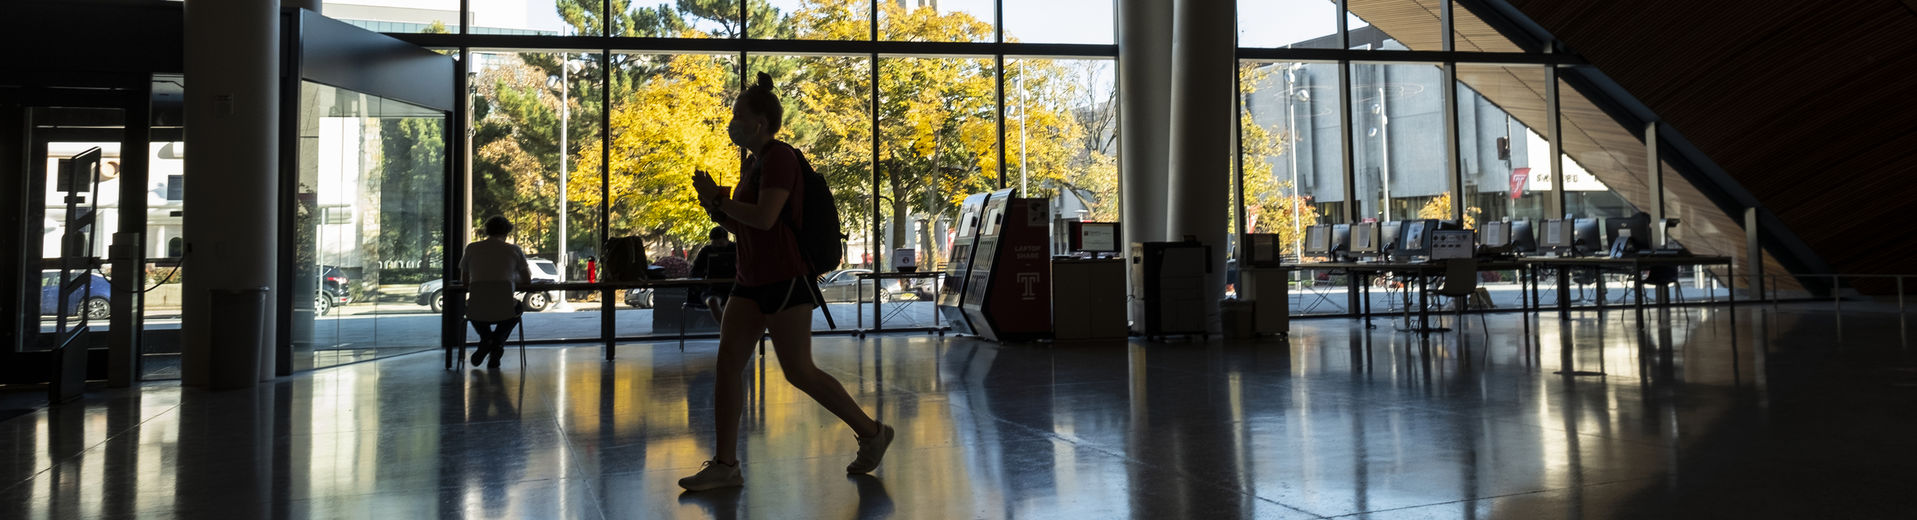 Students walking through the Charles Library lobby on Main Campus